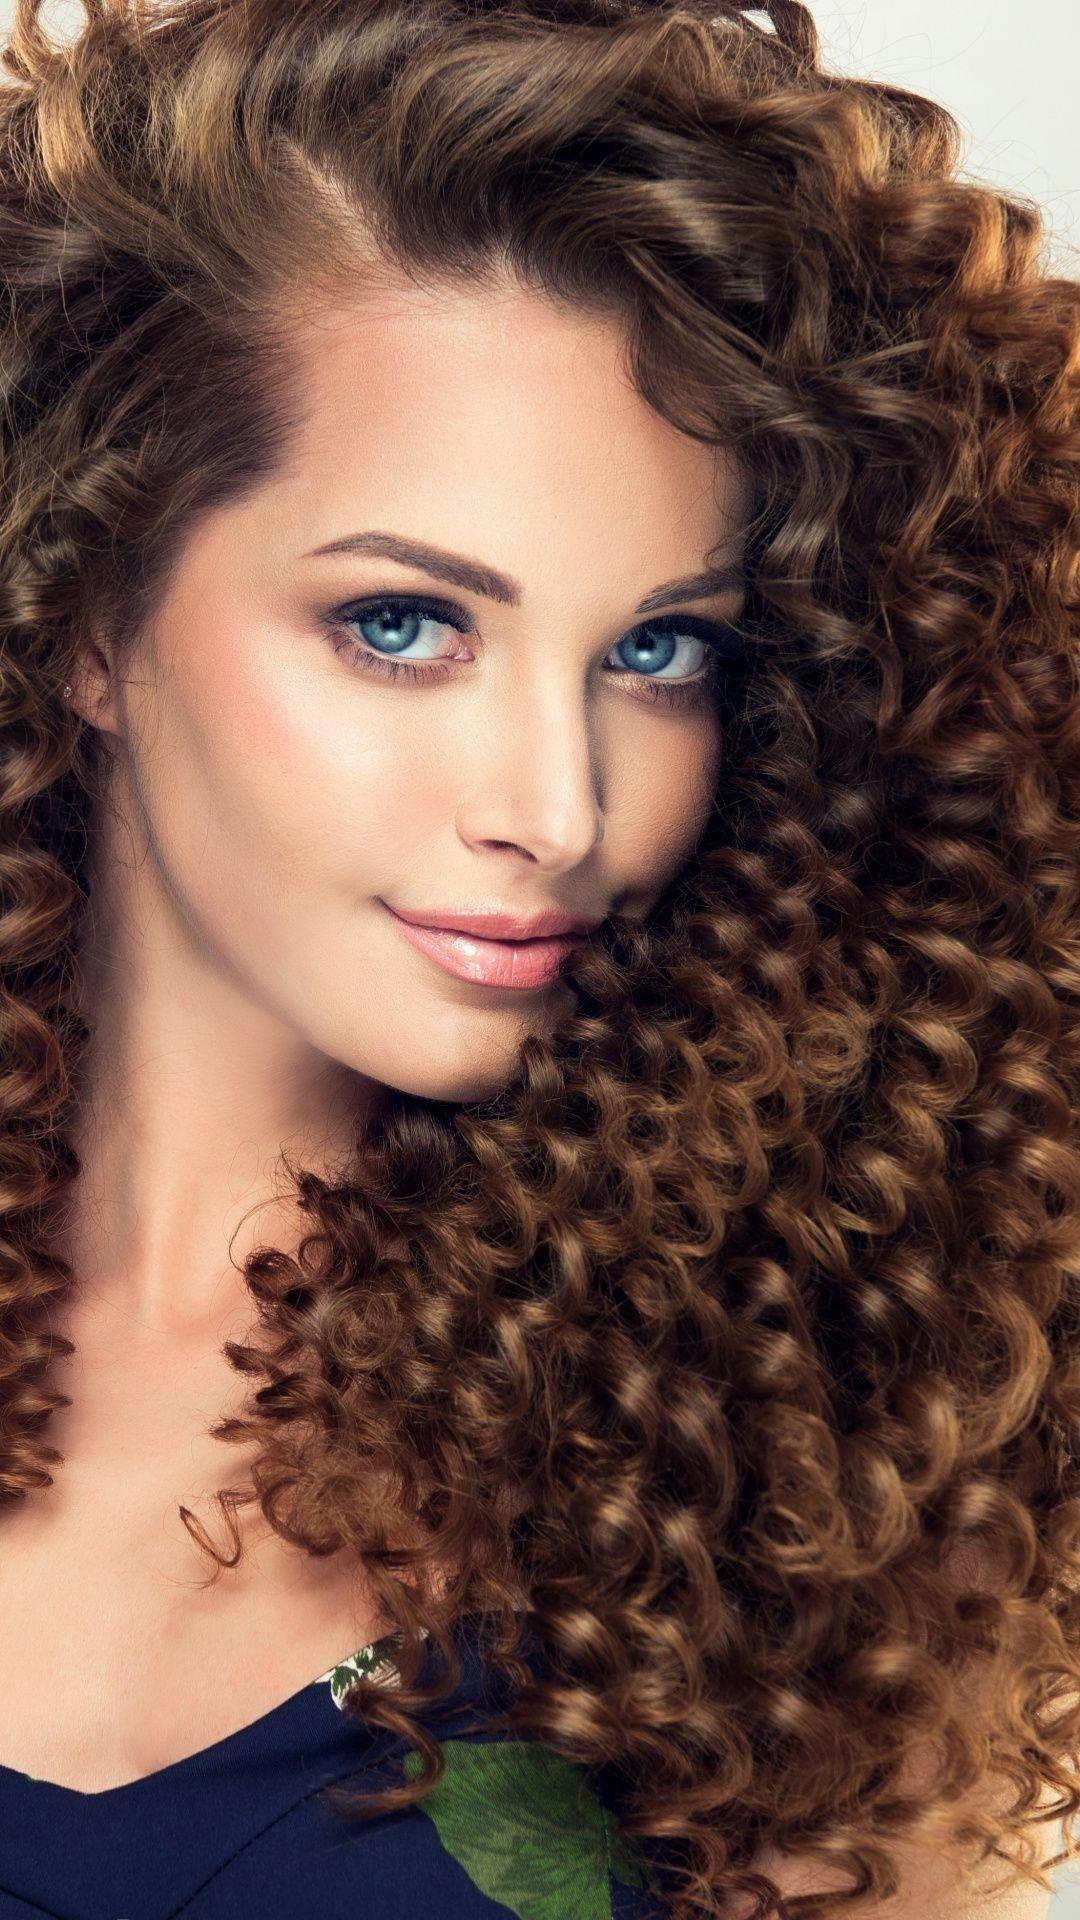 Curly Hair Girls Wallpapers Wallpaper Cave